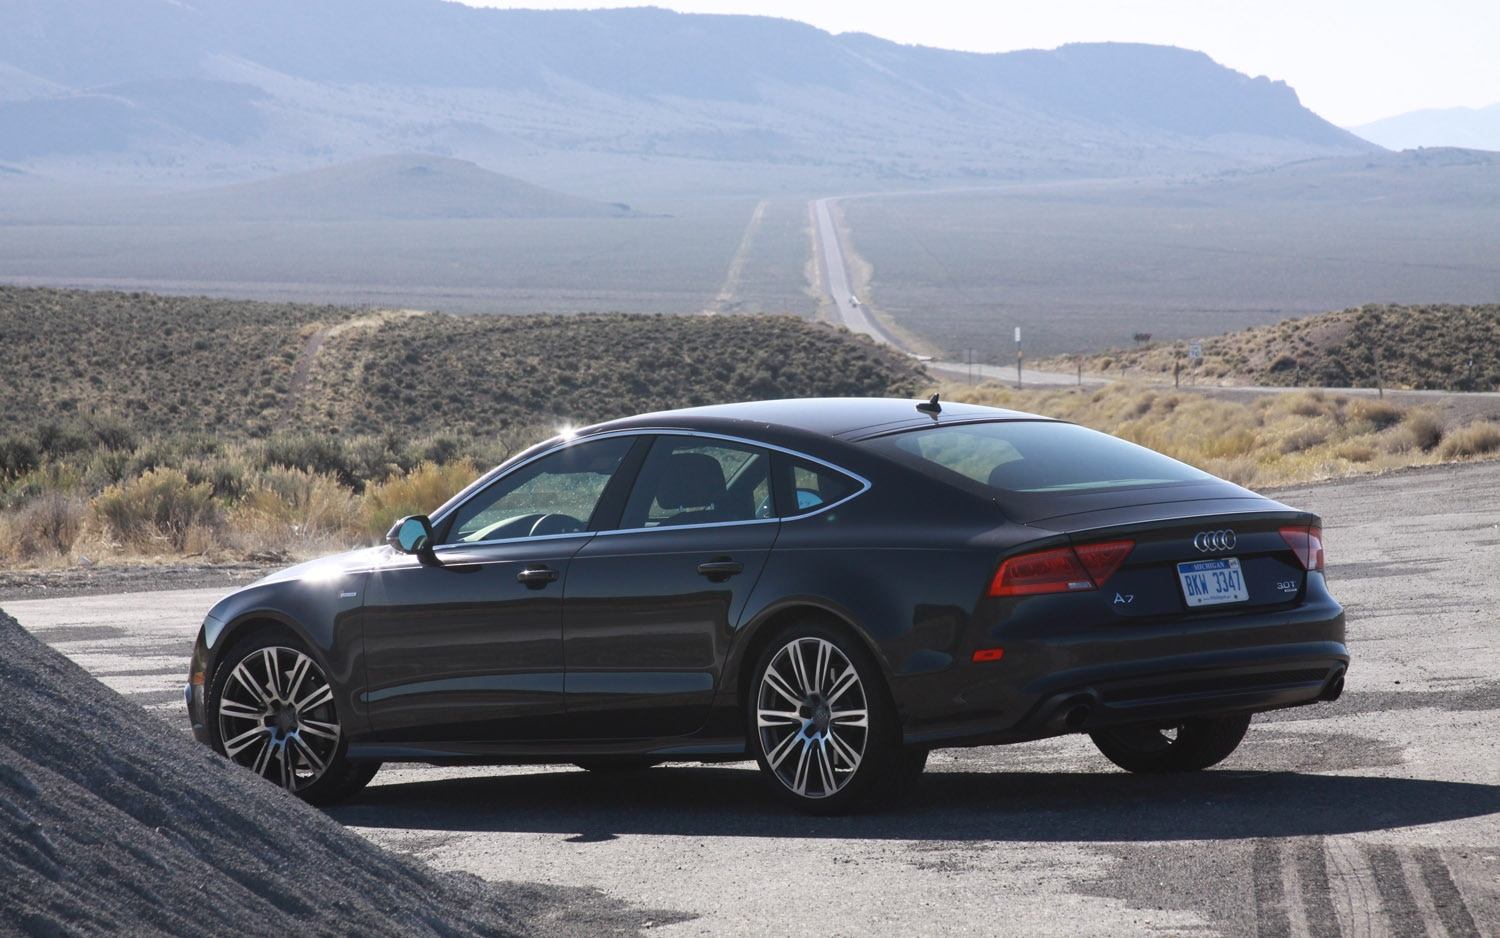 four seasons 2012 audi a7 draper utah to north platte ne. Black Bedroom Furniture Sets. Home Design Ideas